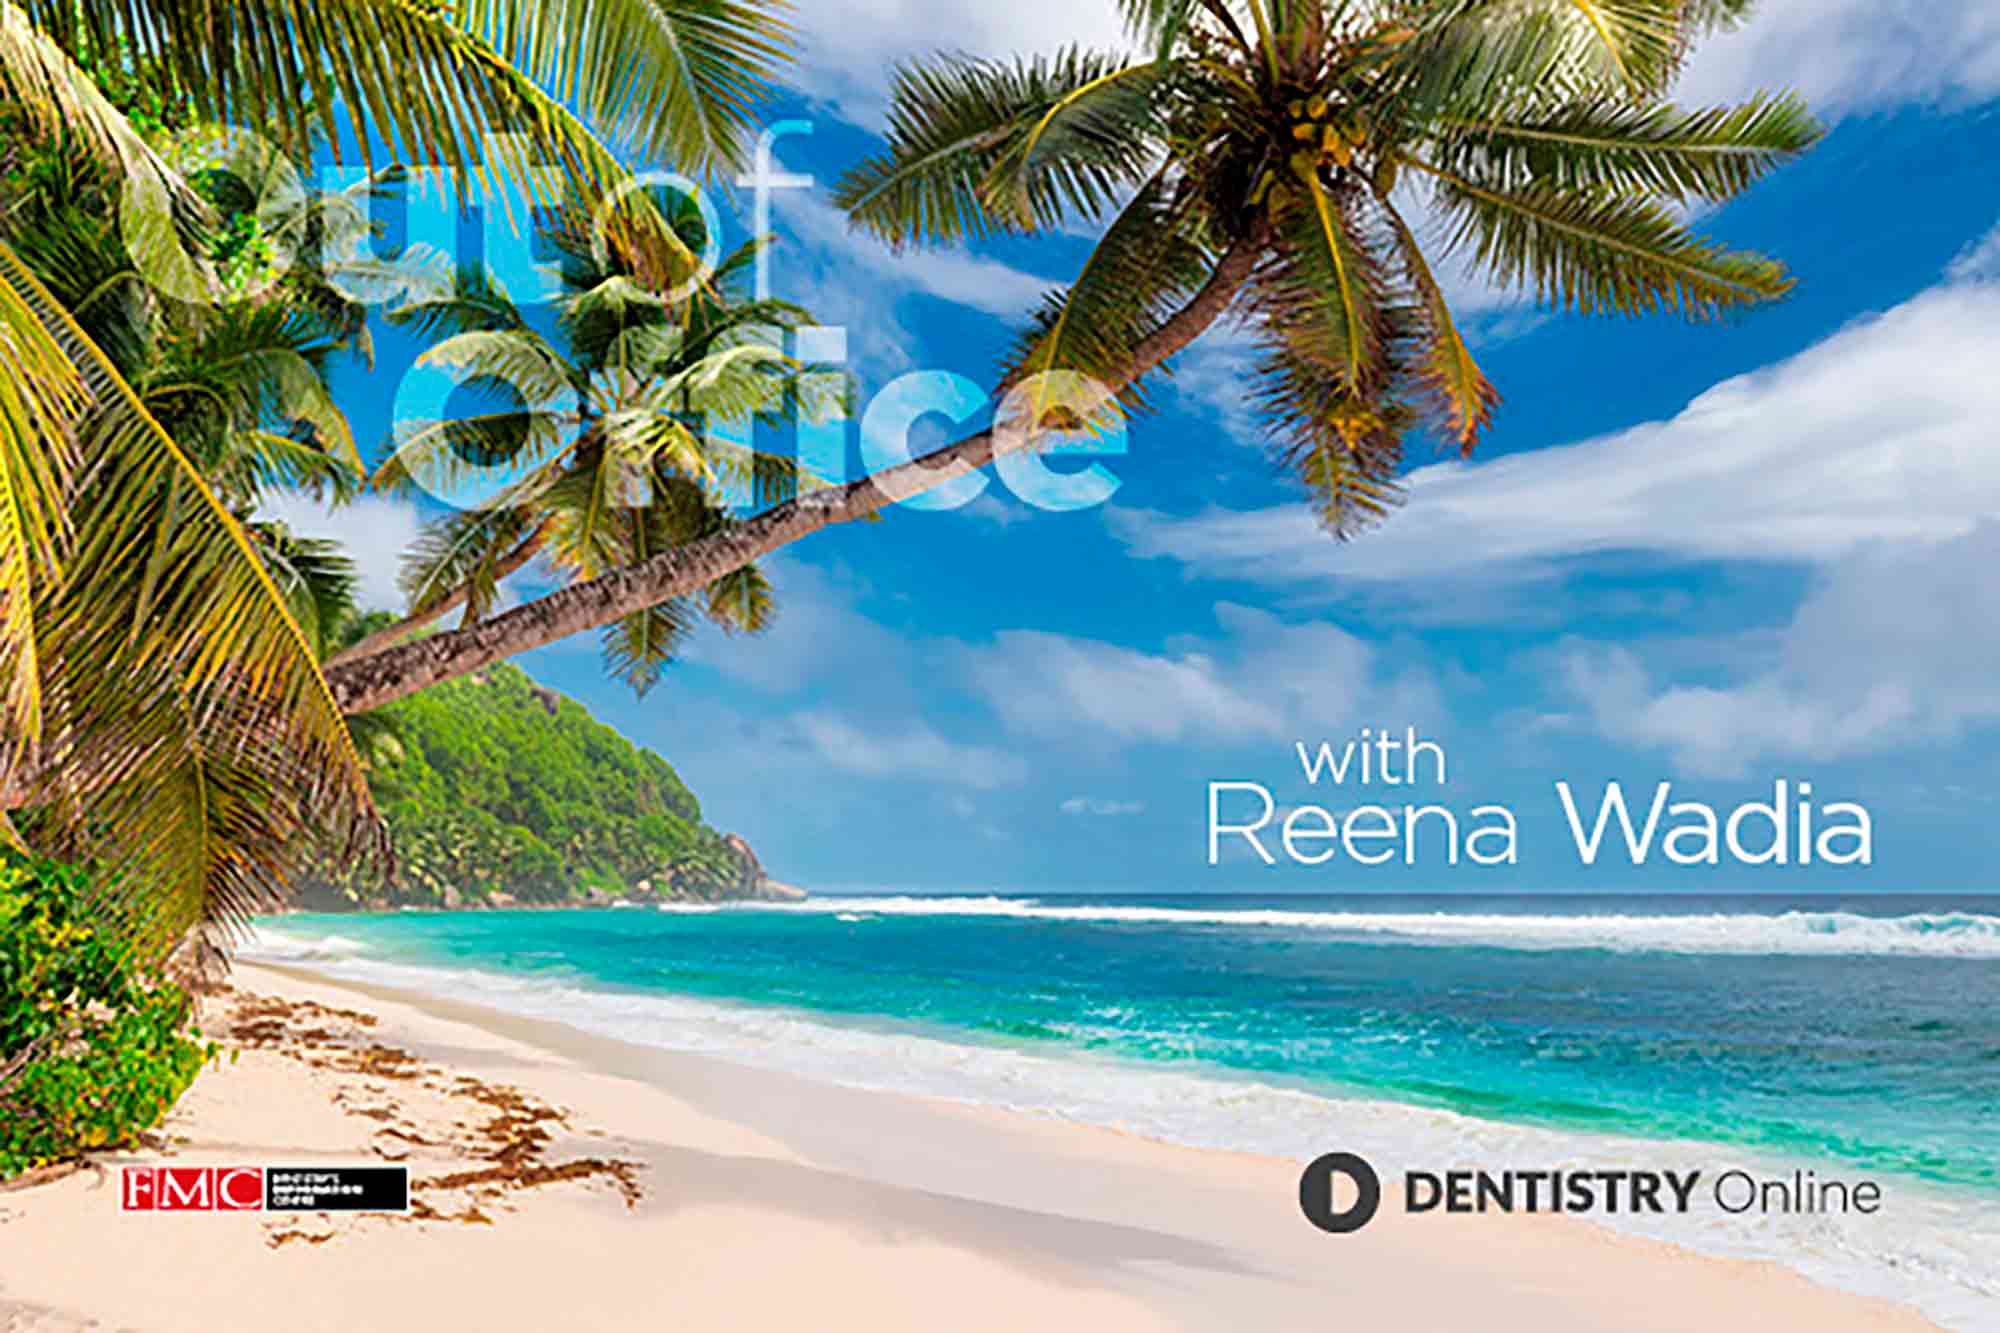 In this week's Out of Office, we hear from Reena Wadia who discusses her weekend city walks, travelling the world and her mum's Indian cooking